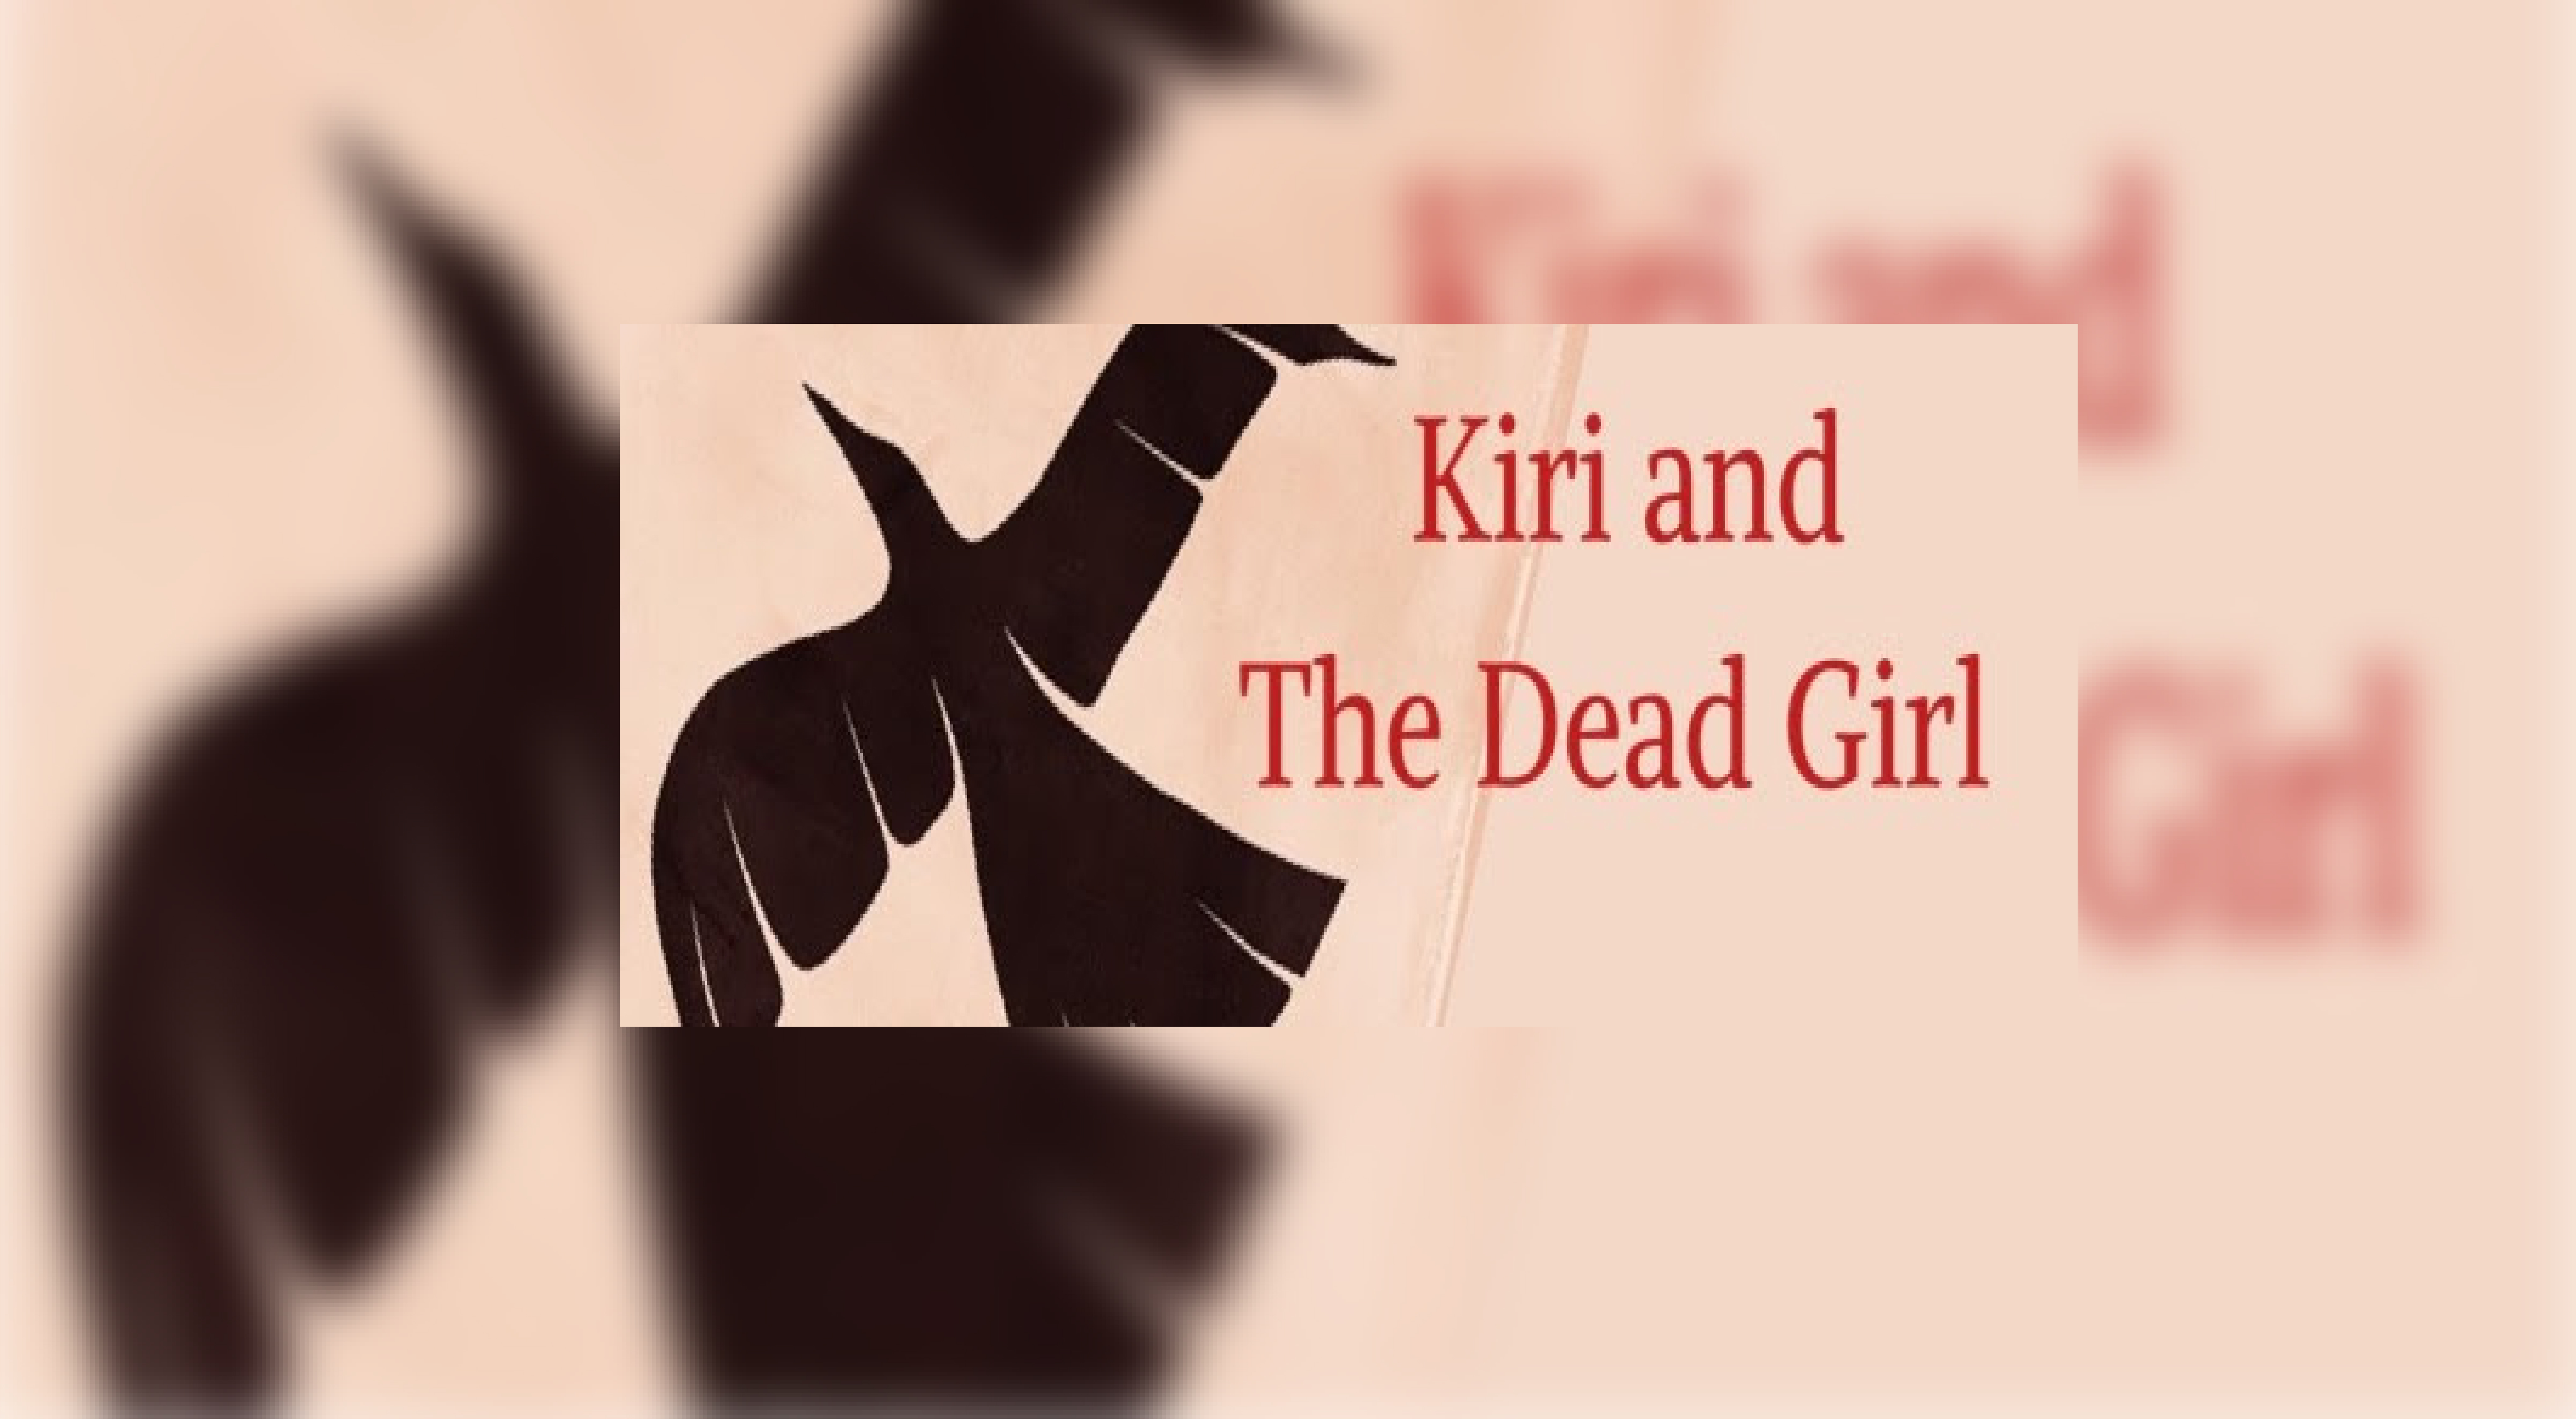 GRACE DOVE'S DIRECTORIAL DEBUT KIRI AND THE DEAD GIRL GOES TO CAMERA IN BC